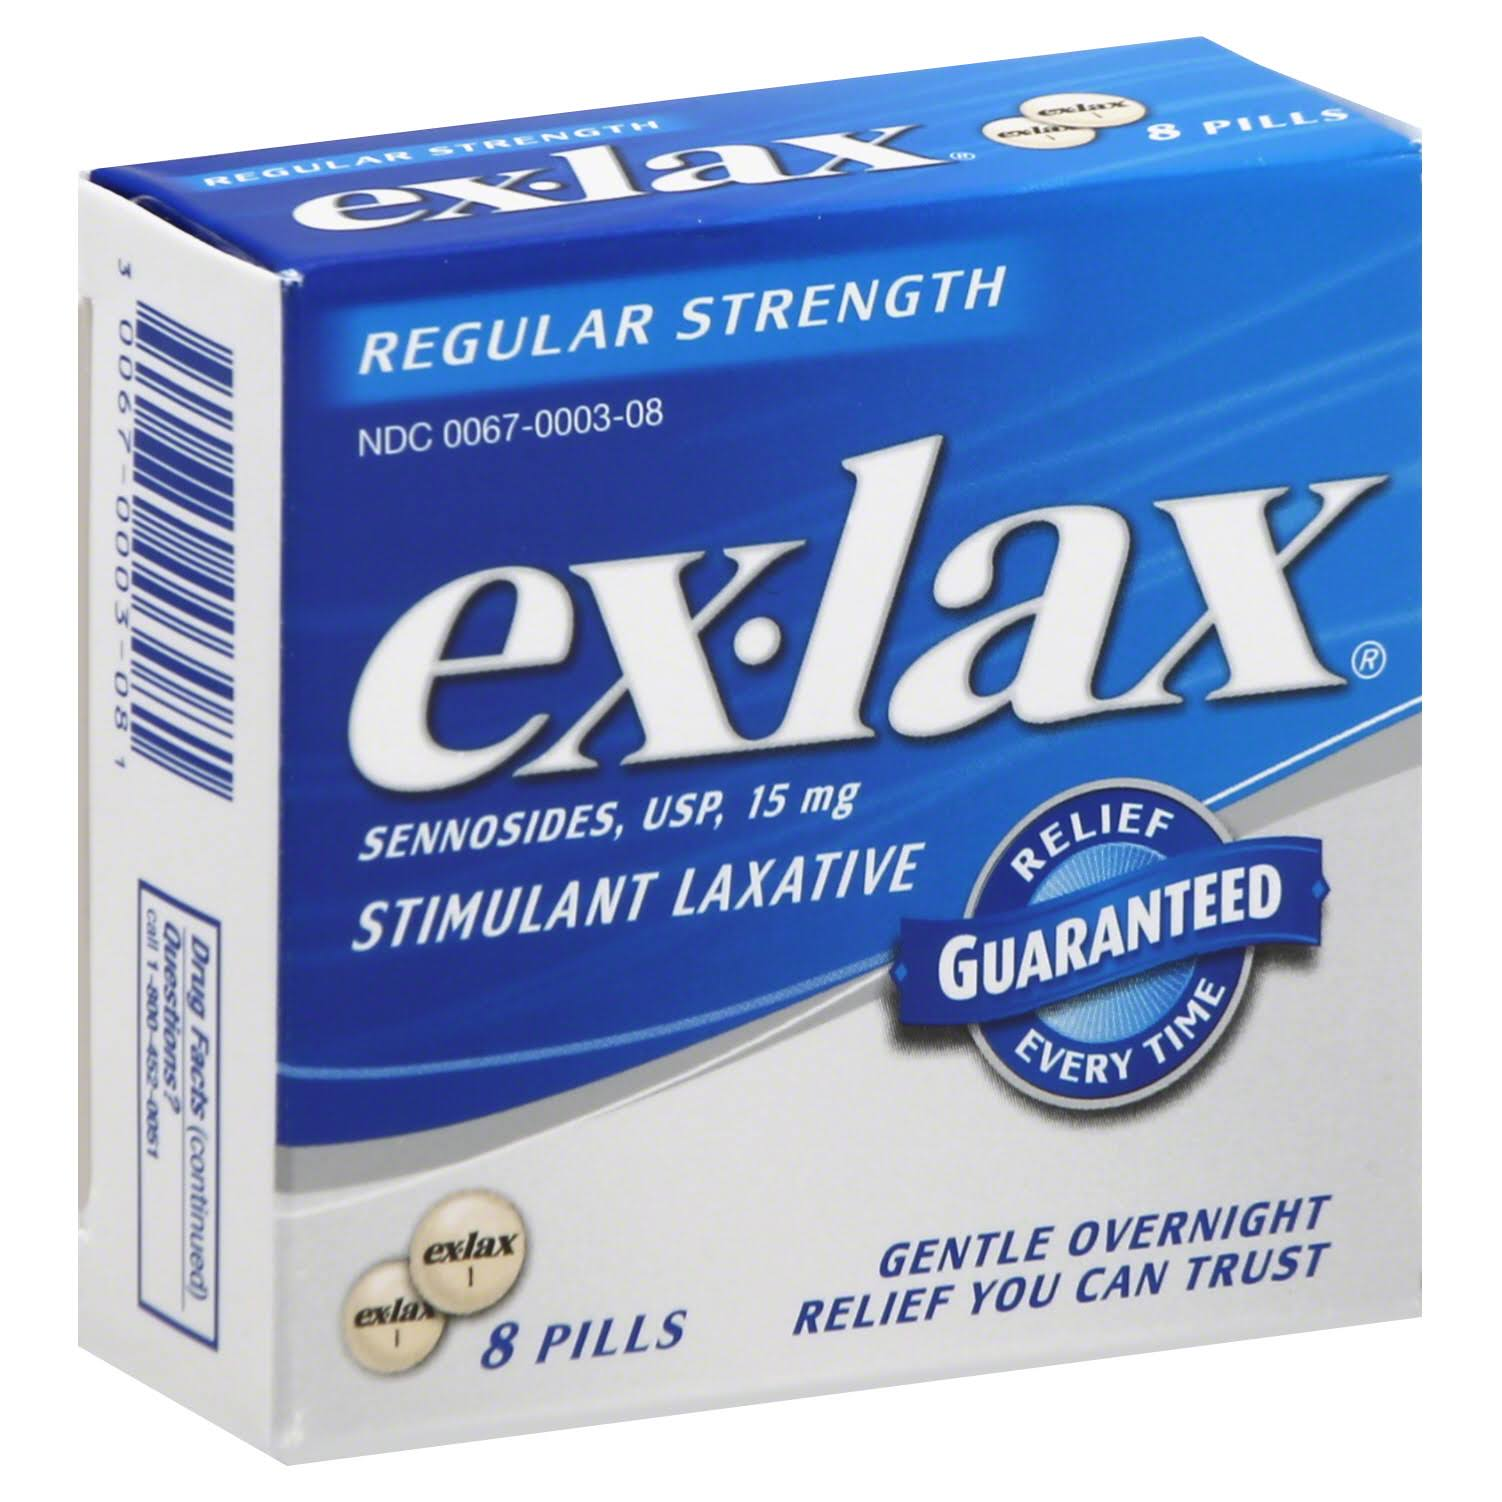 Ex-Lax Sennosides USP Regular Strength Stimulant Laxative Pills - 8 Pills, 15mg